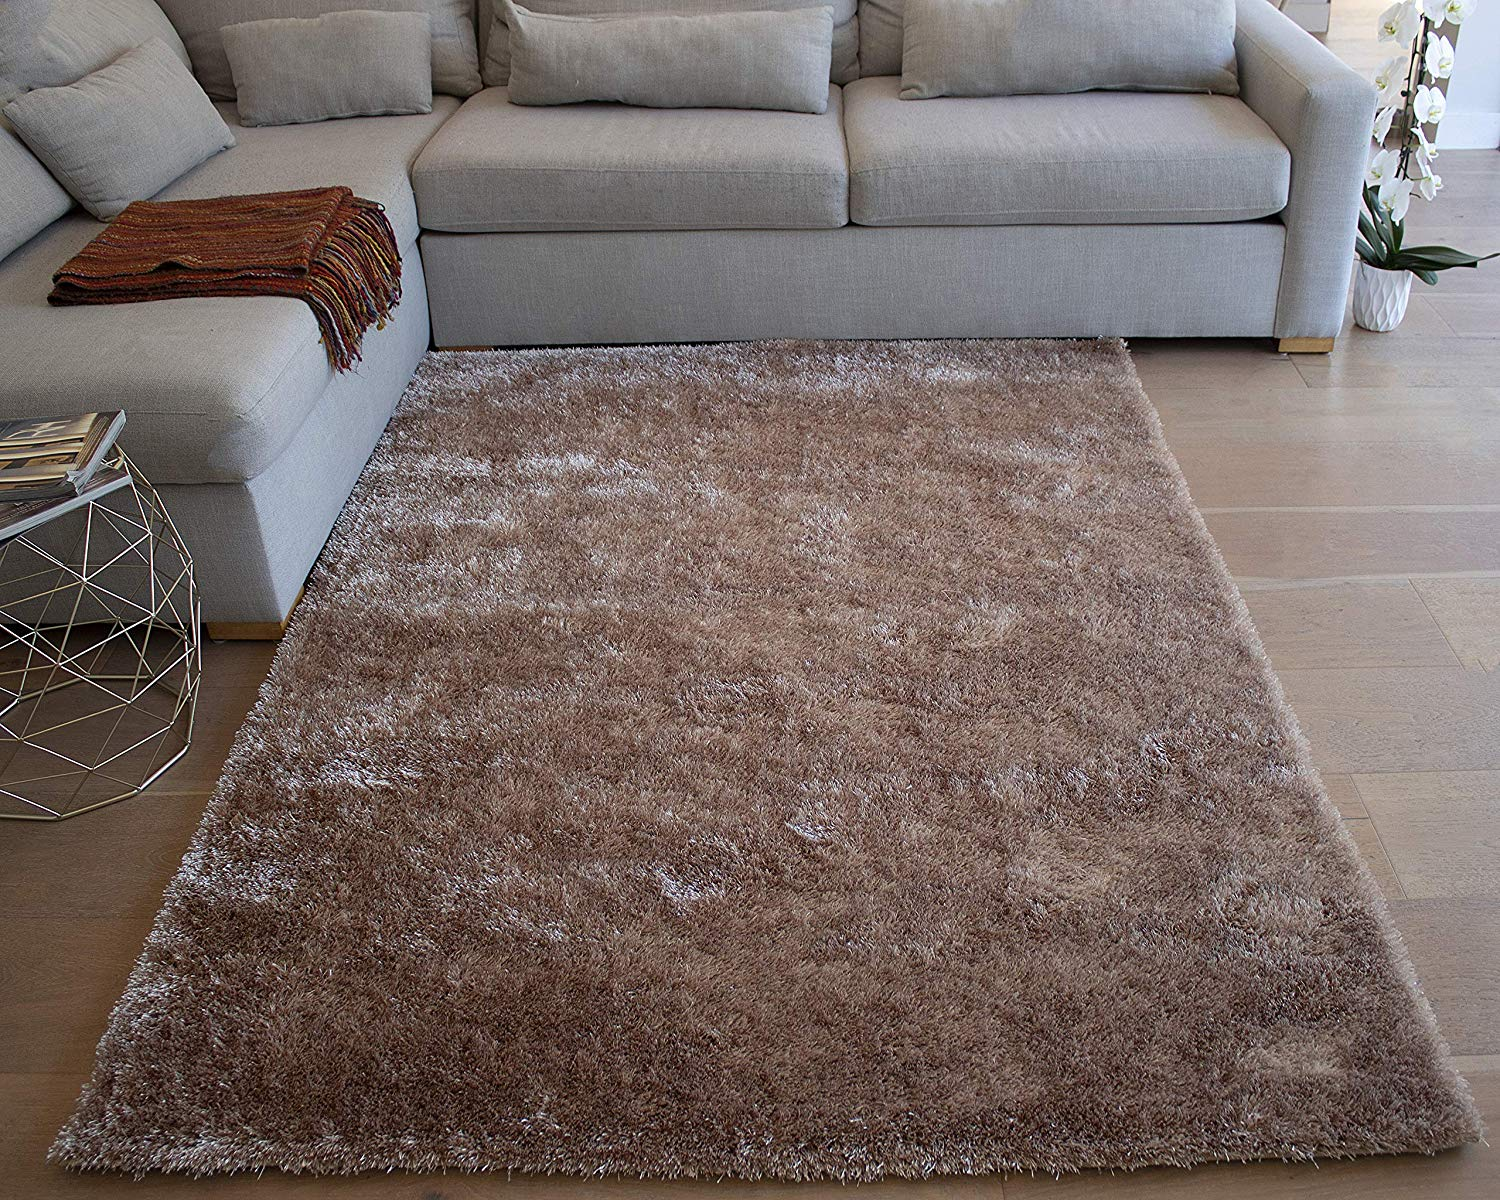 SOFT COMFY FLOOR HOME DECOR LARGE CREAM BEIGE BROWN RED SOFT VISIONA SOFT RUGS